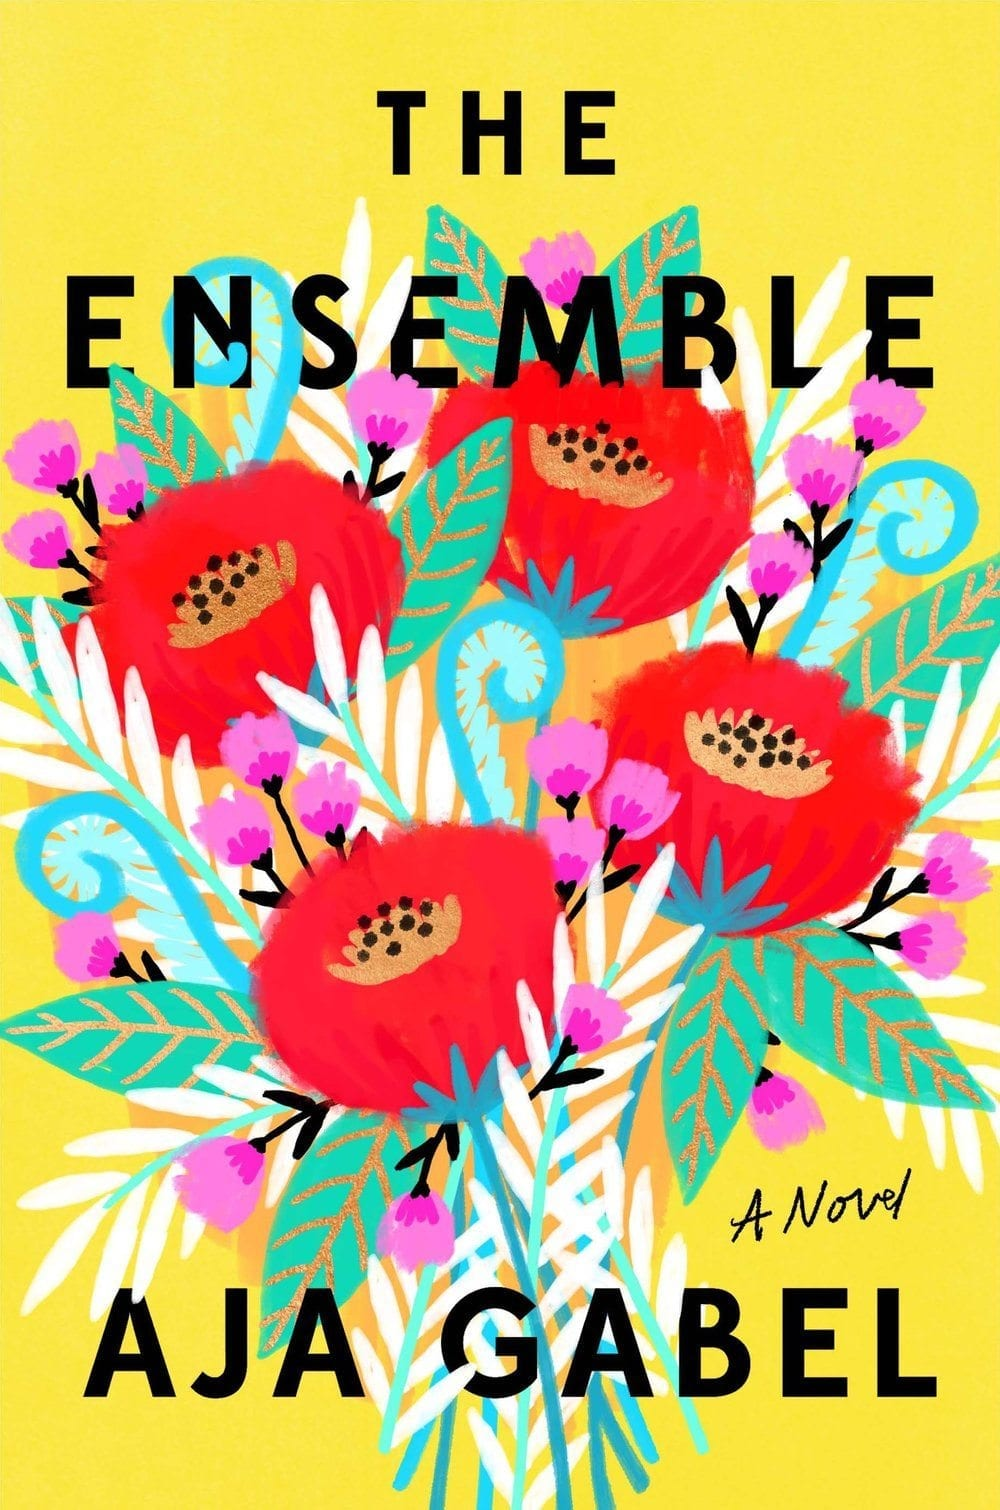 The Ensemble by Aja Gabel out in May